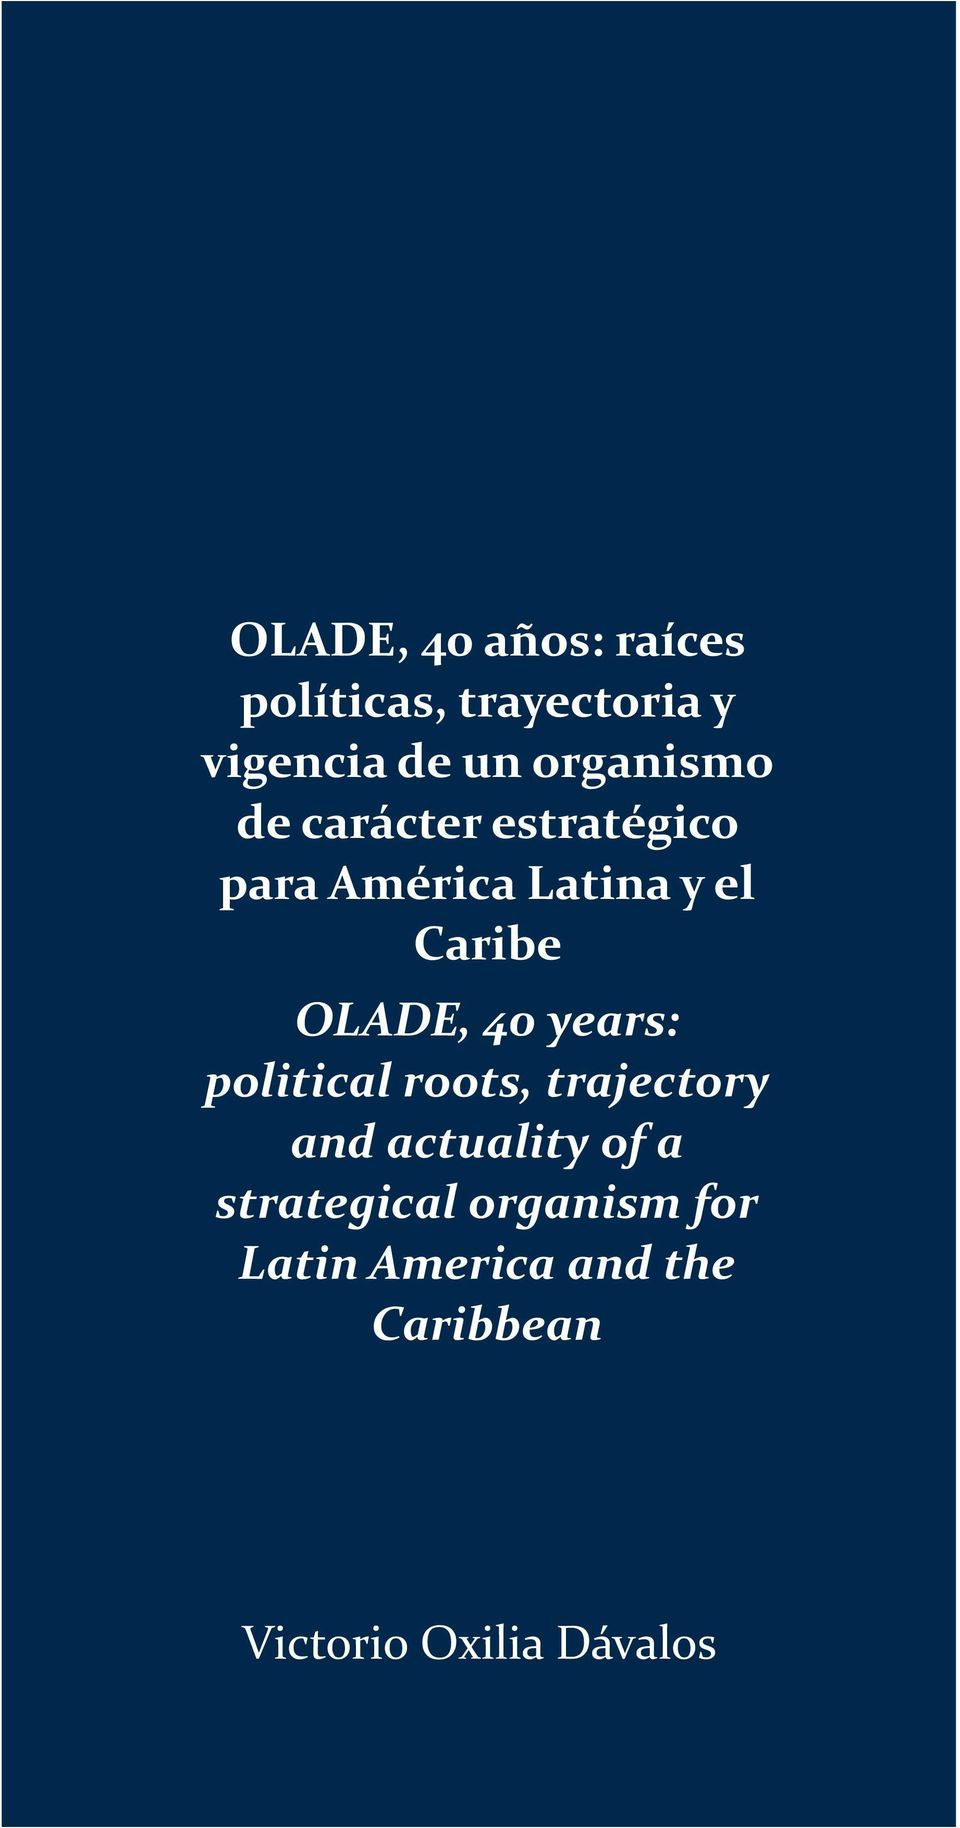 OLADE, 40 years: political roots, trajectory and actuality of a